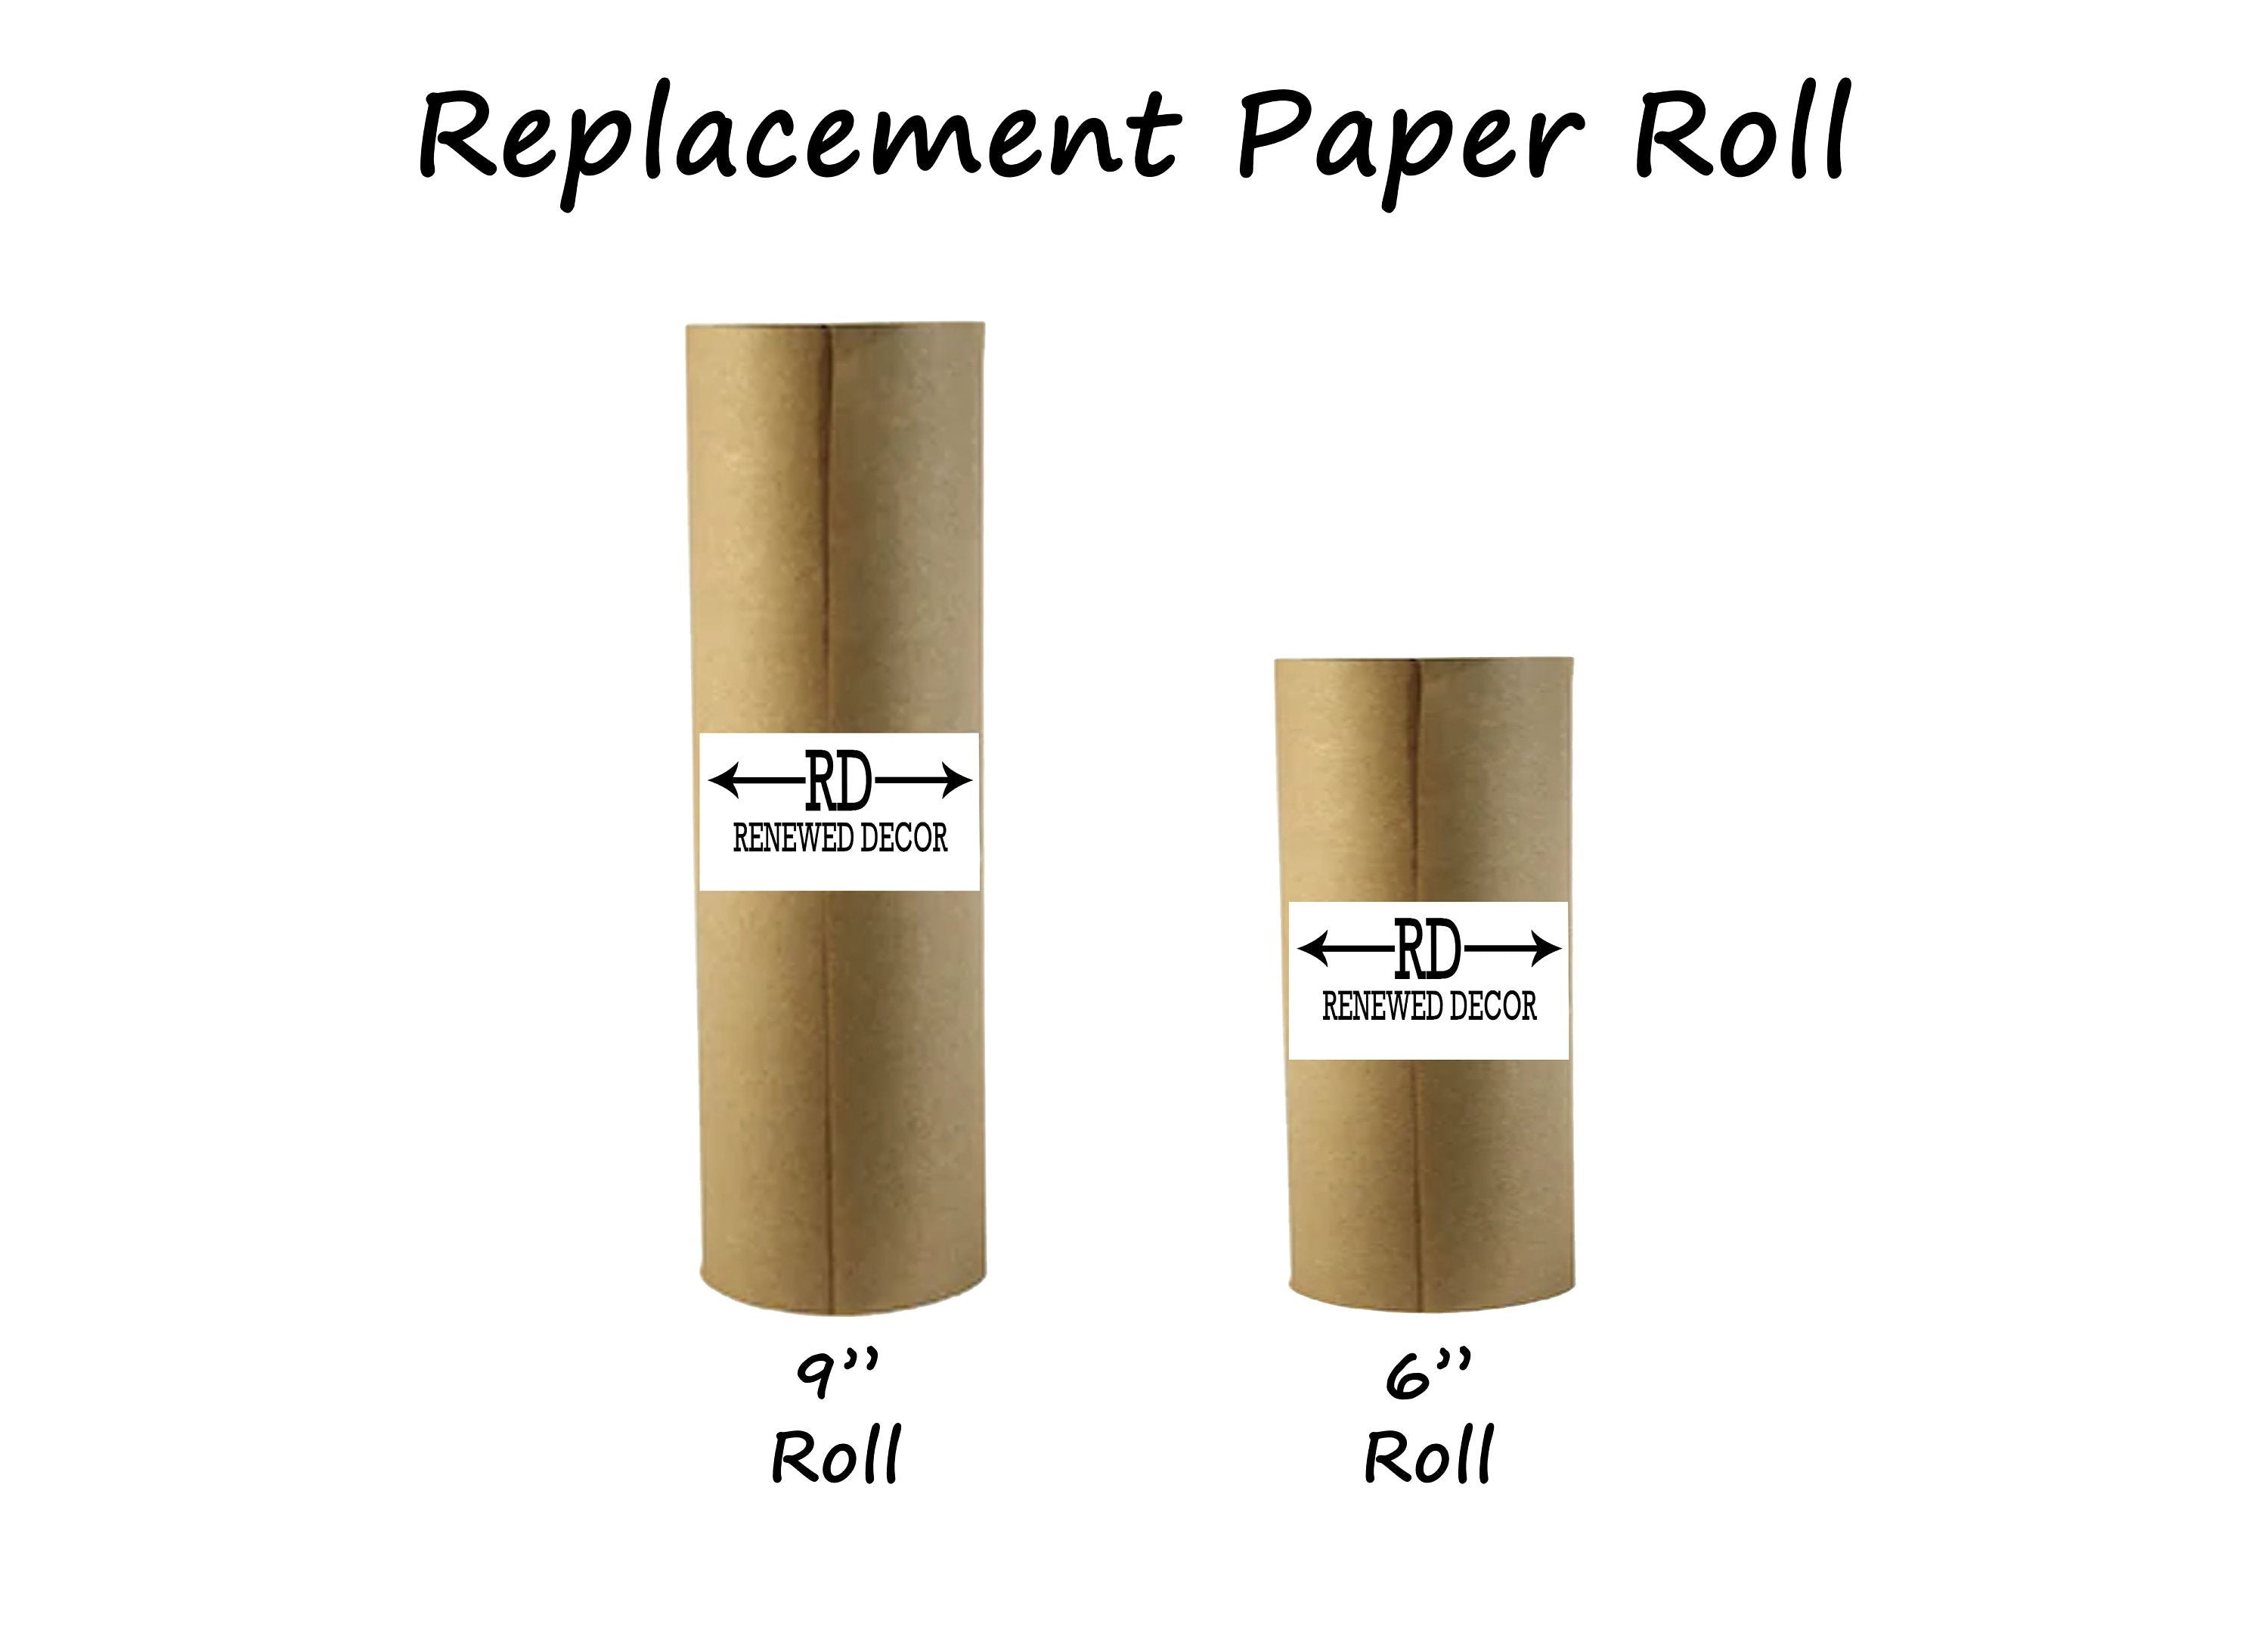 Replacement PaperRoll, Memo Paper Roll for Renewed Decor - Renewed Decor & Storage